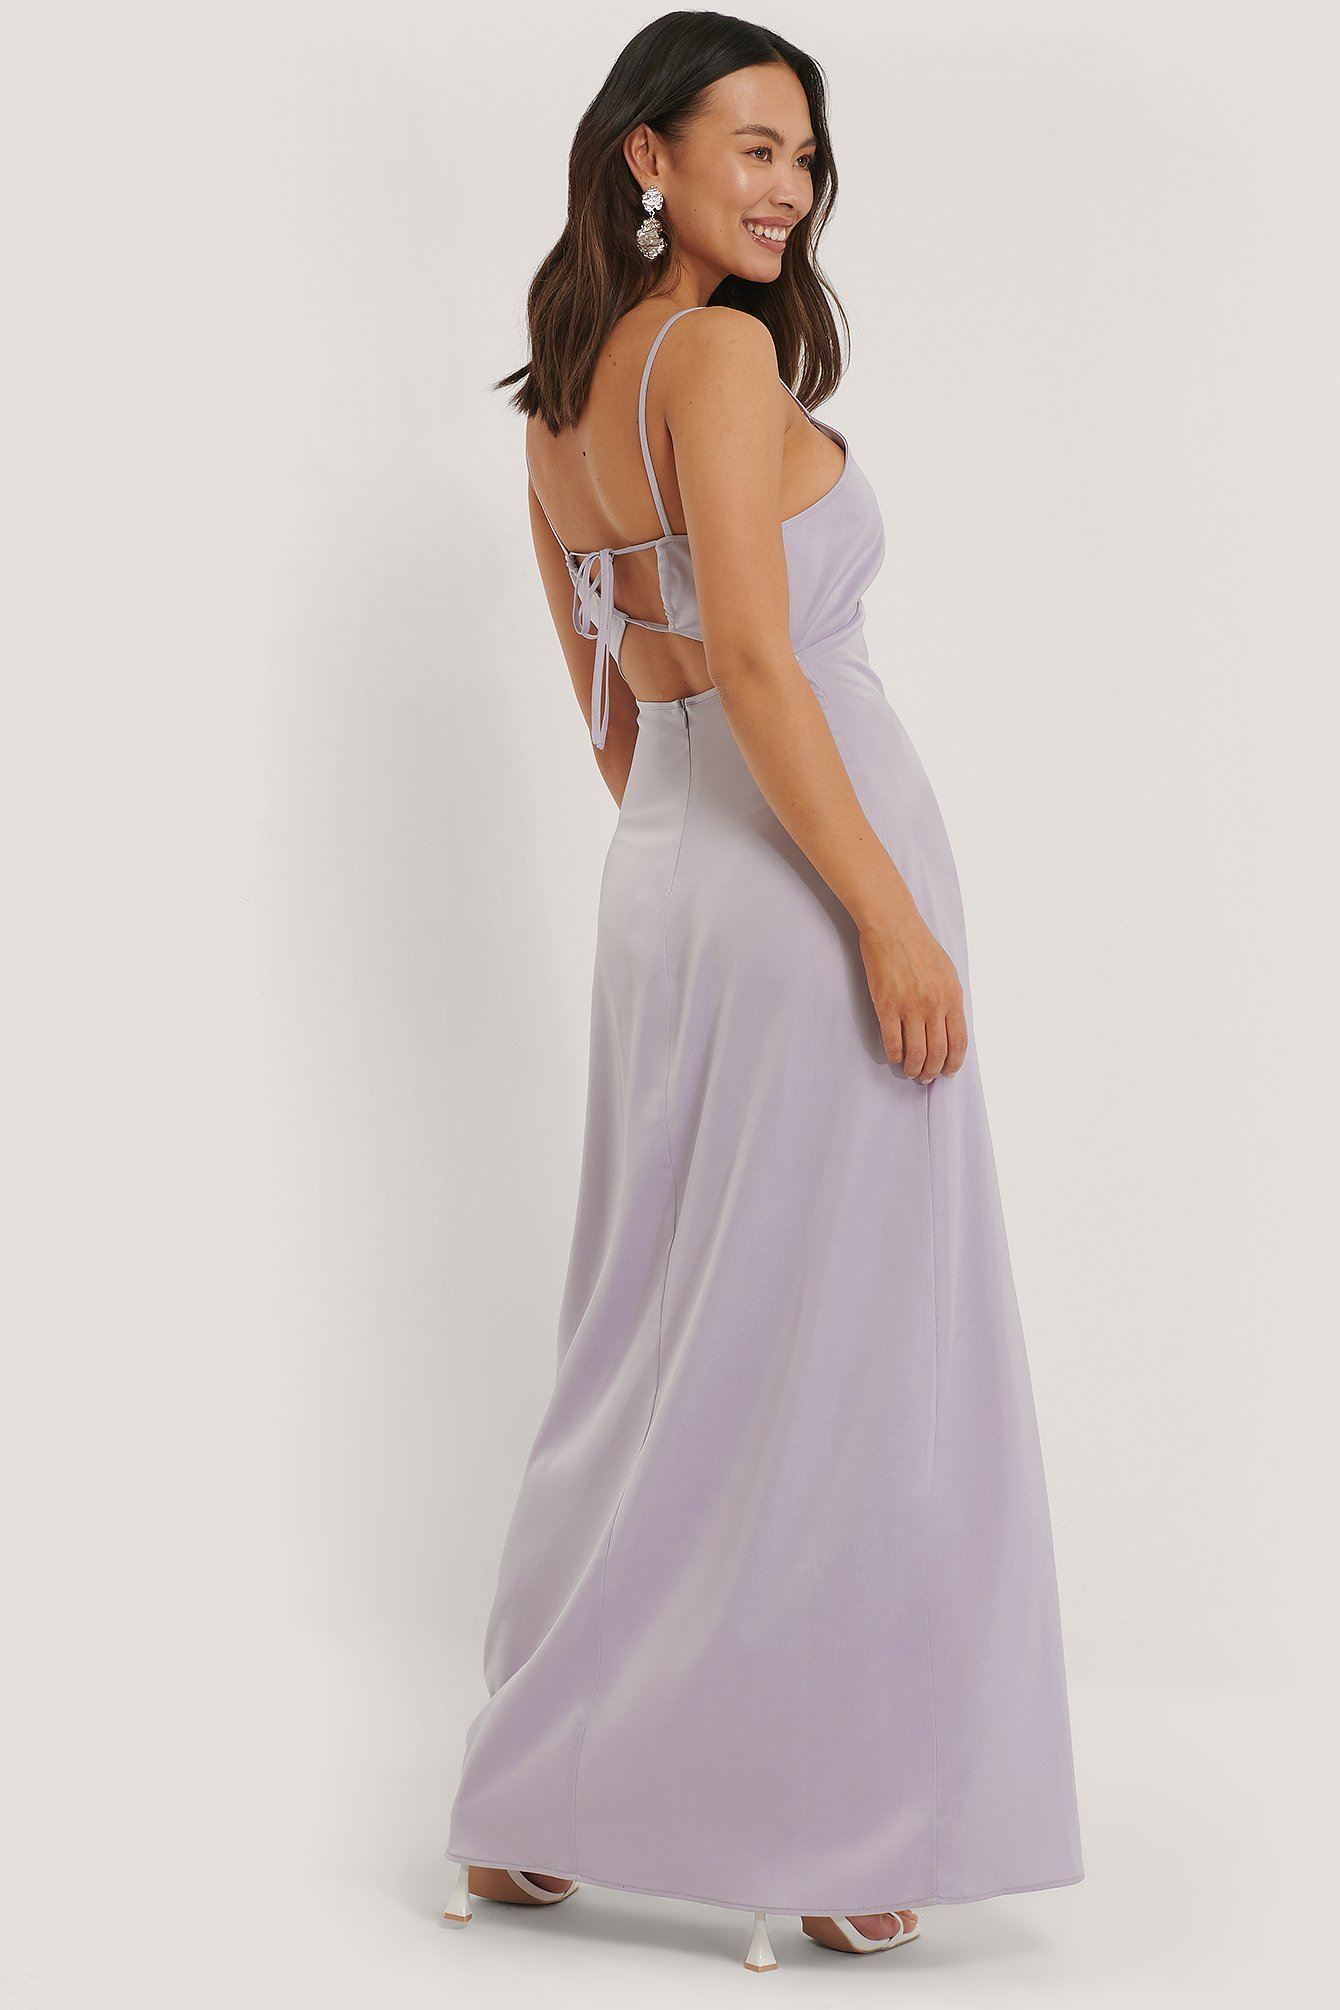 Purple Cross Back Satin Dress